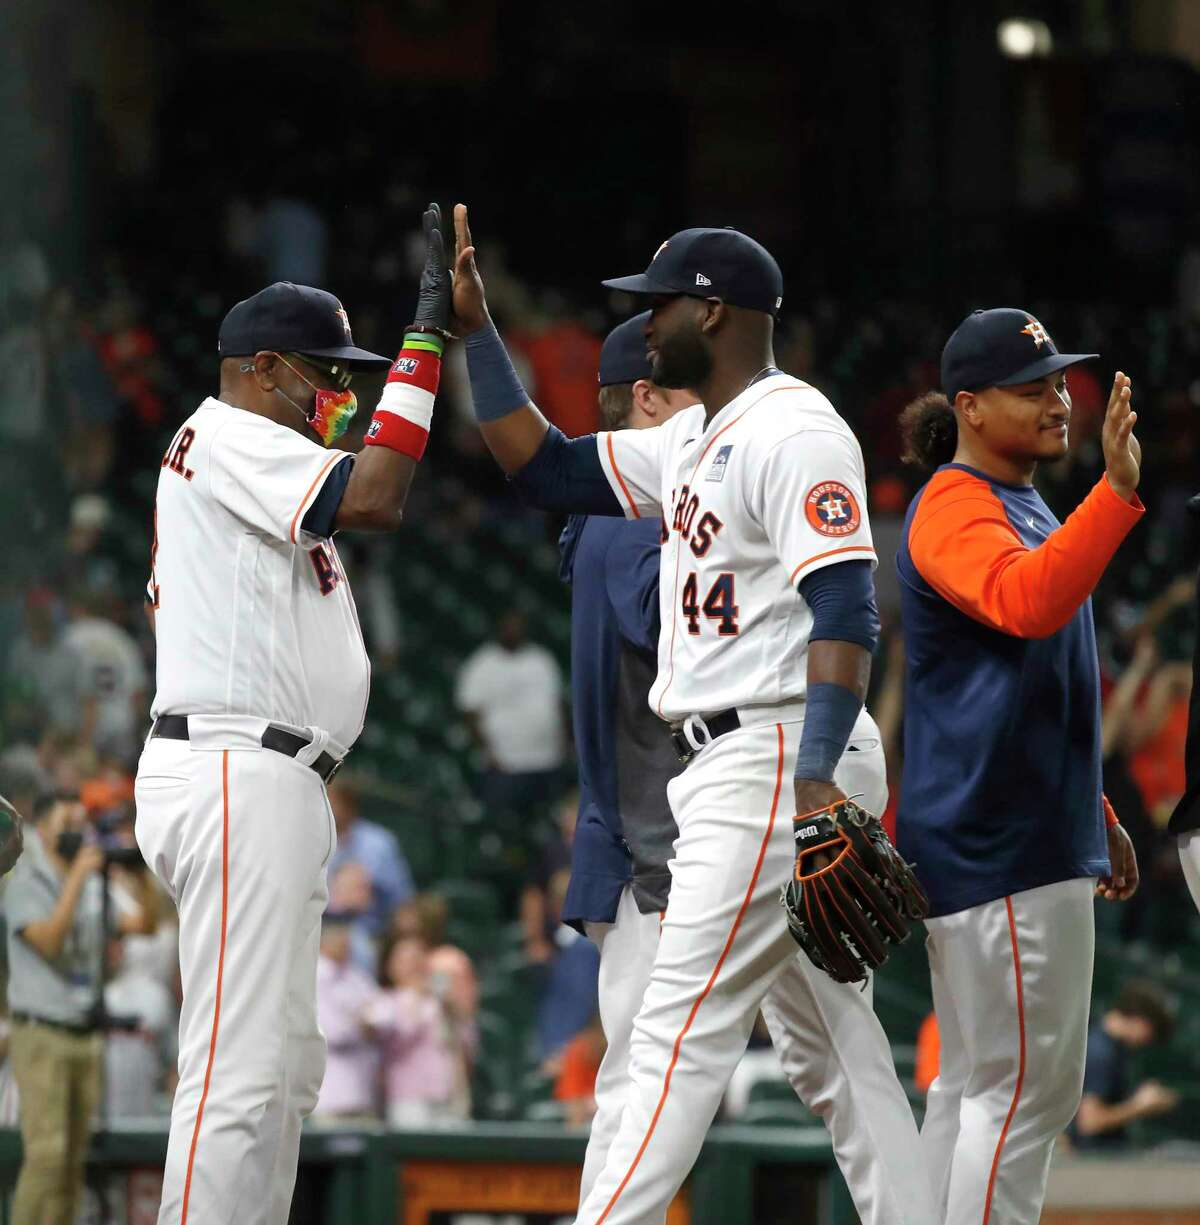 Houston Astros Yordan Alvarez (44) and manager Dusty Baker Jr. (12) celebrate the Astros 2-1 win over the Boston Red Sox during the ninth inning of an MLB baseball game at Minute Maid Park, Wednesday, June 2, 2021, in Houston.